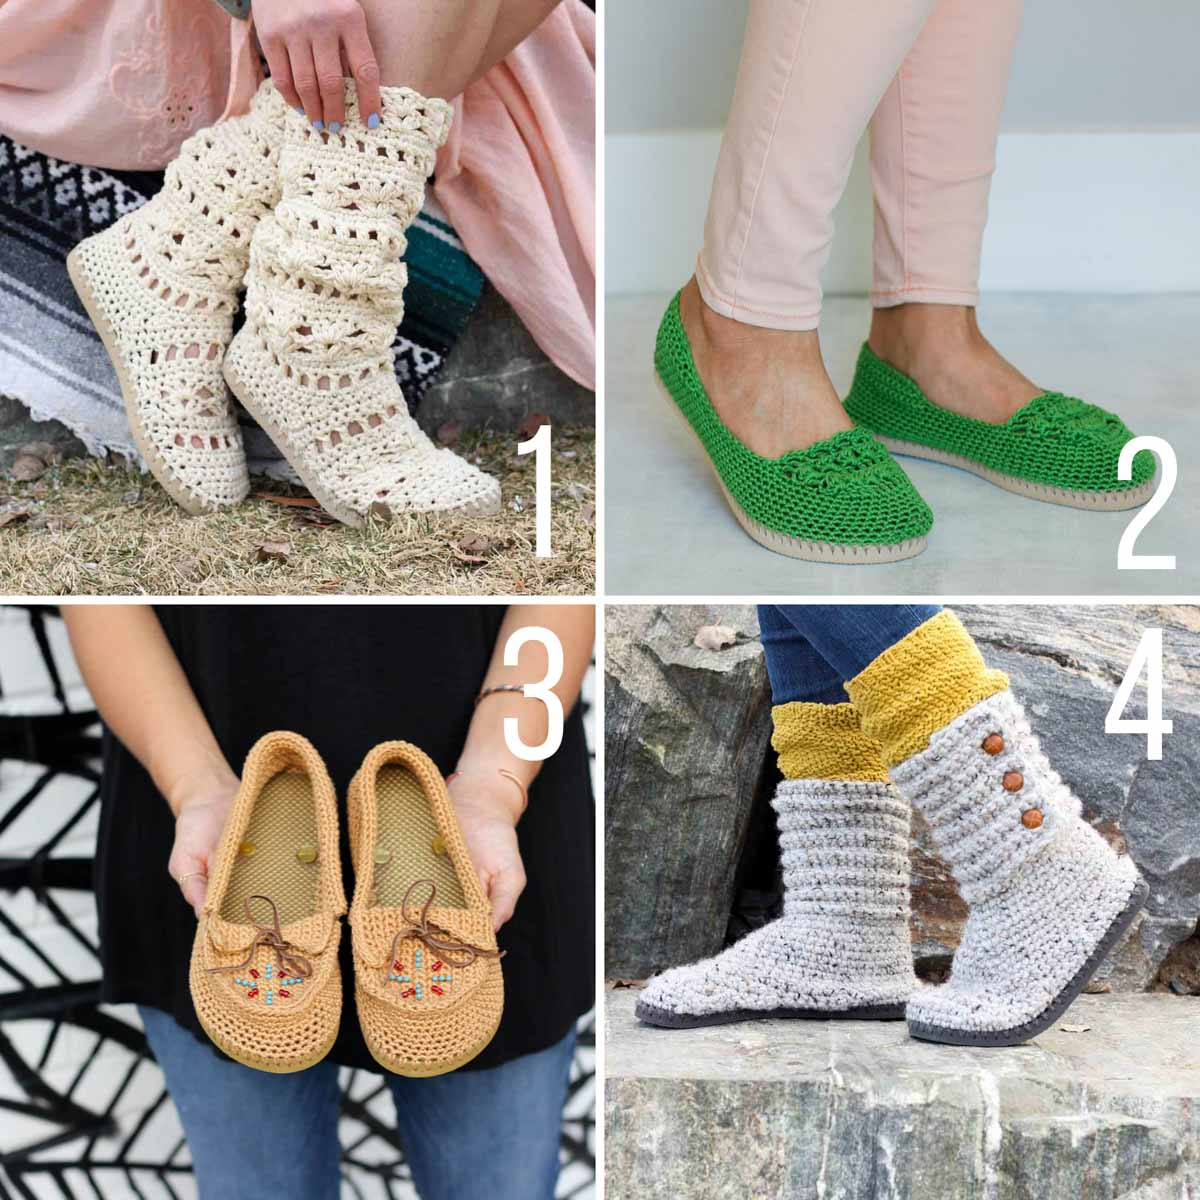 Free patterns for crochet shoes with flip flop soles. Includes a pair of crochet slides, crochet moccasins, crochet ugg-style boots, and crochet Lacey boots.